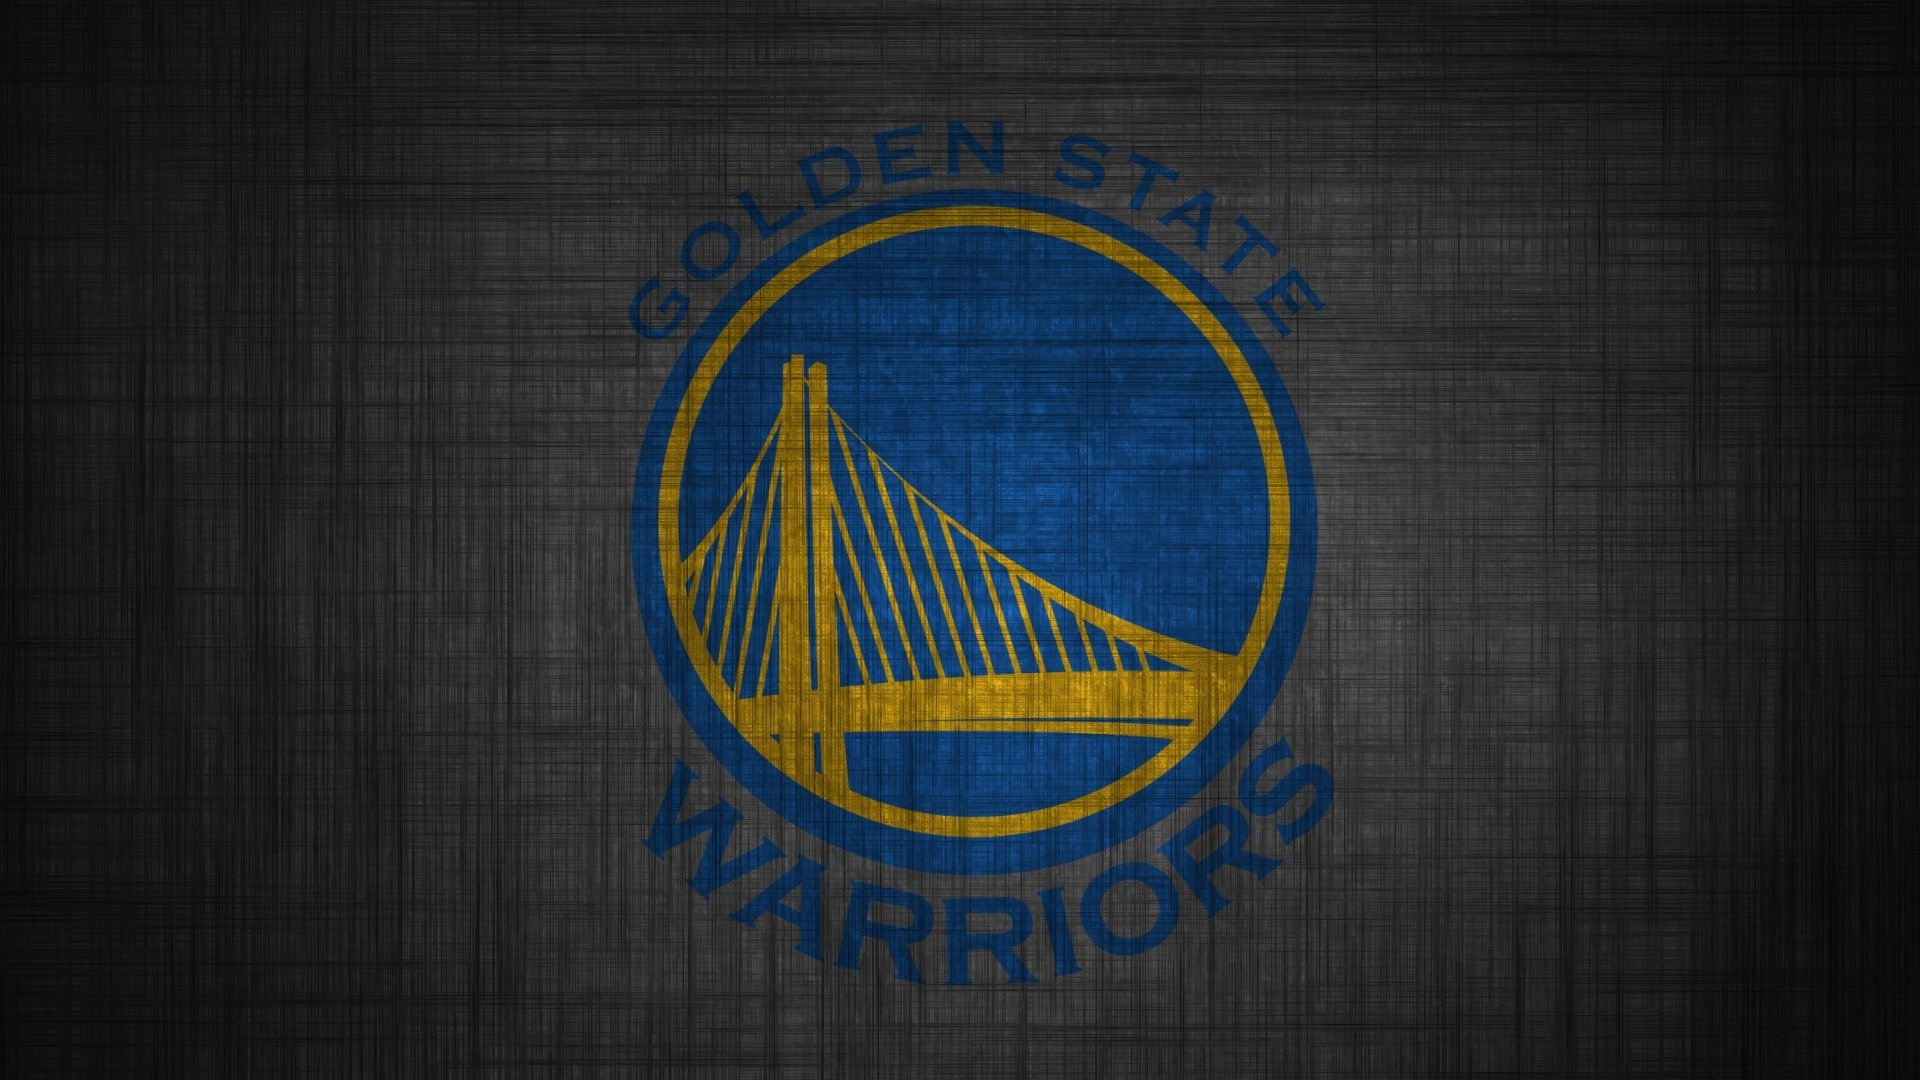 golden state warriors logo wallpaper | wallpaper hd 1080p